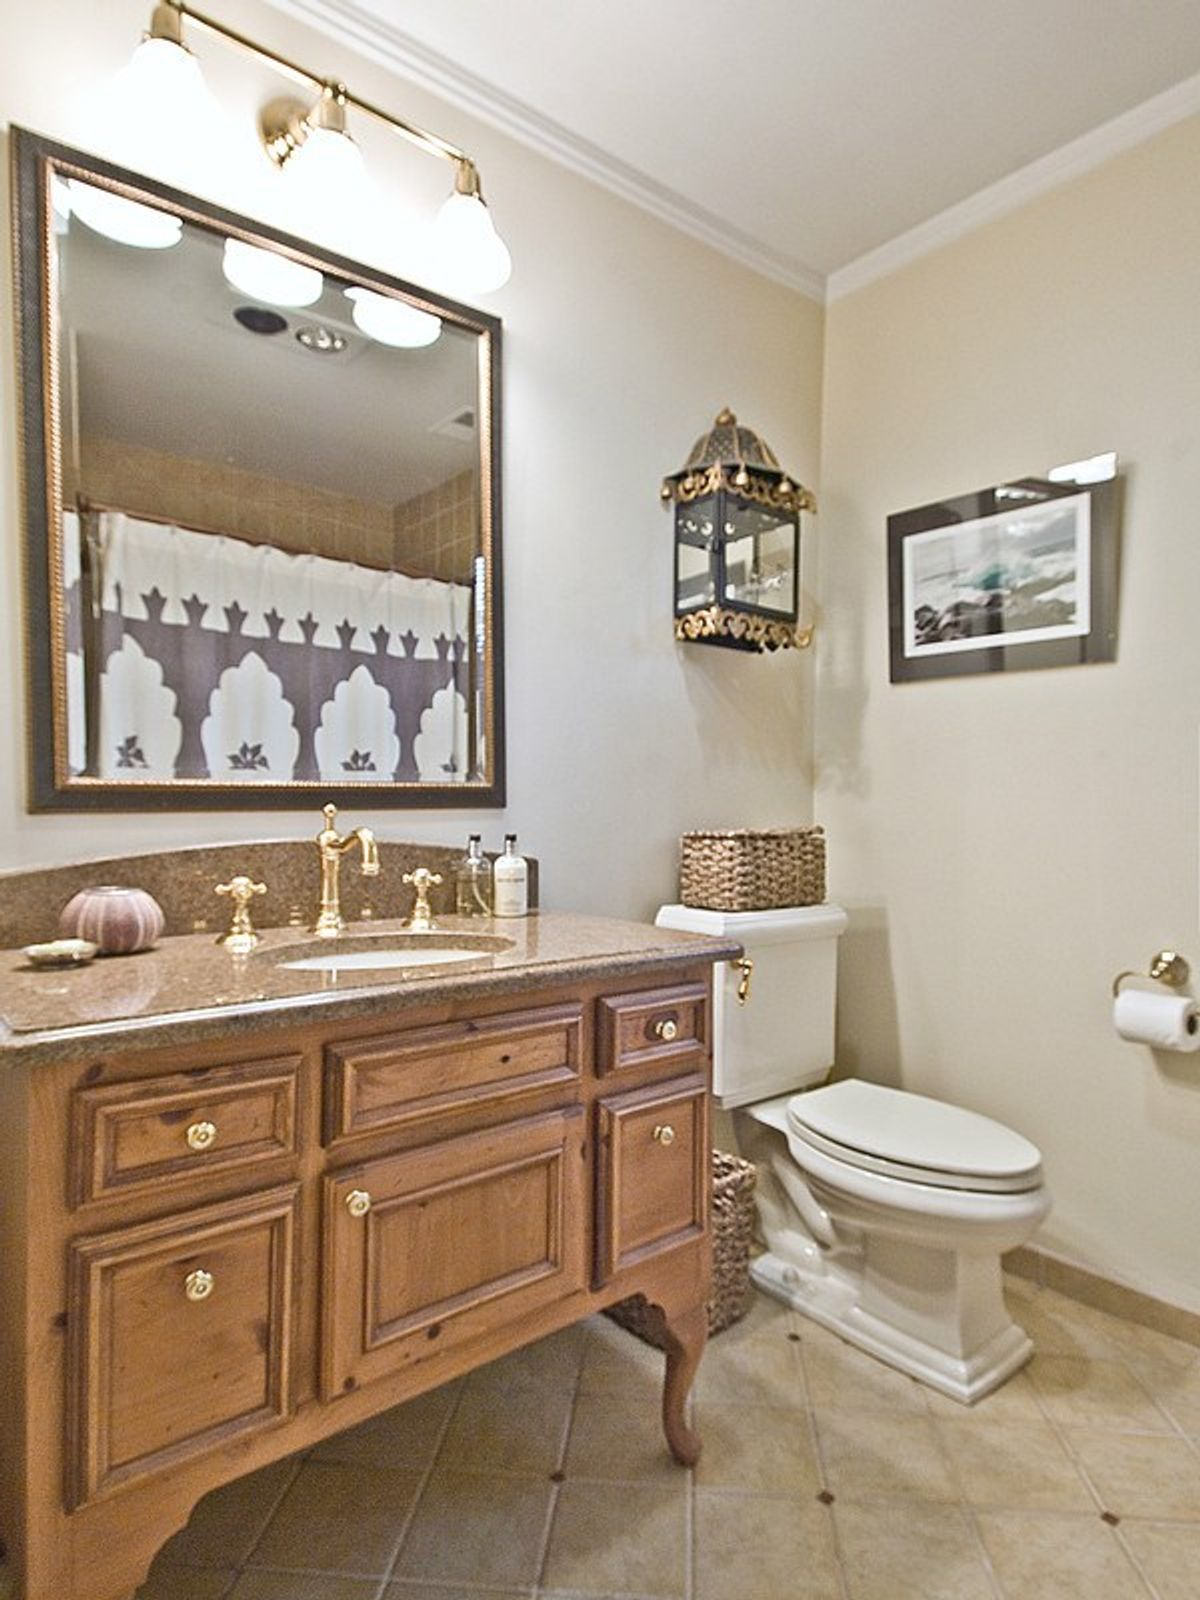 Immaculate One Level Townhouse